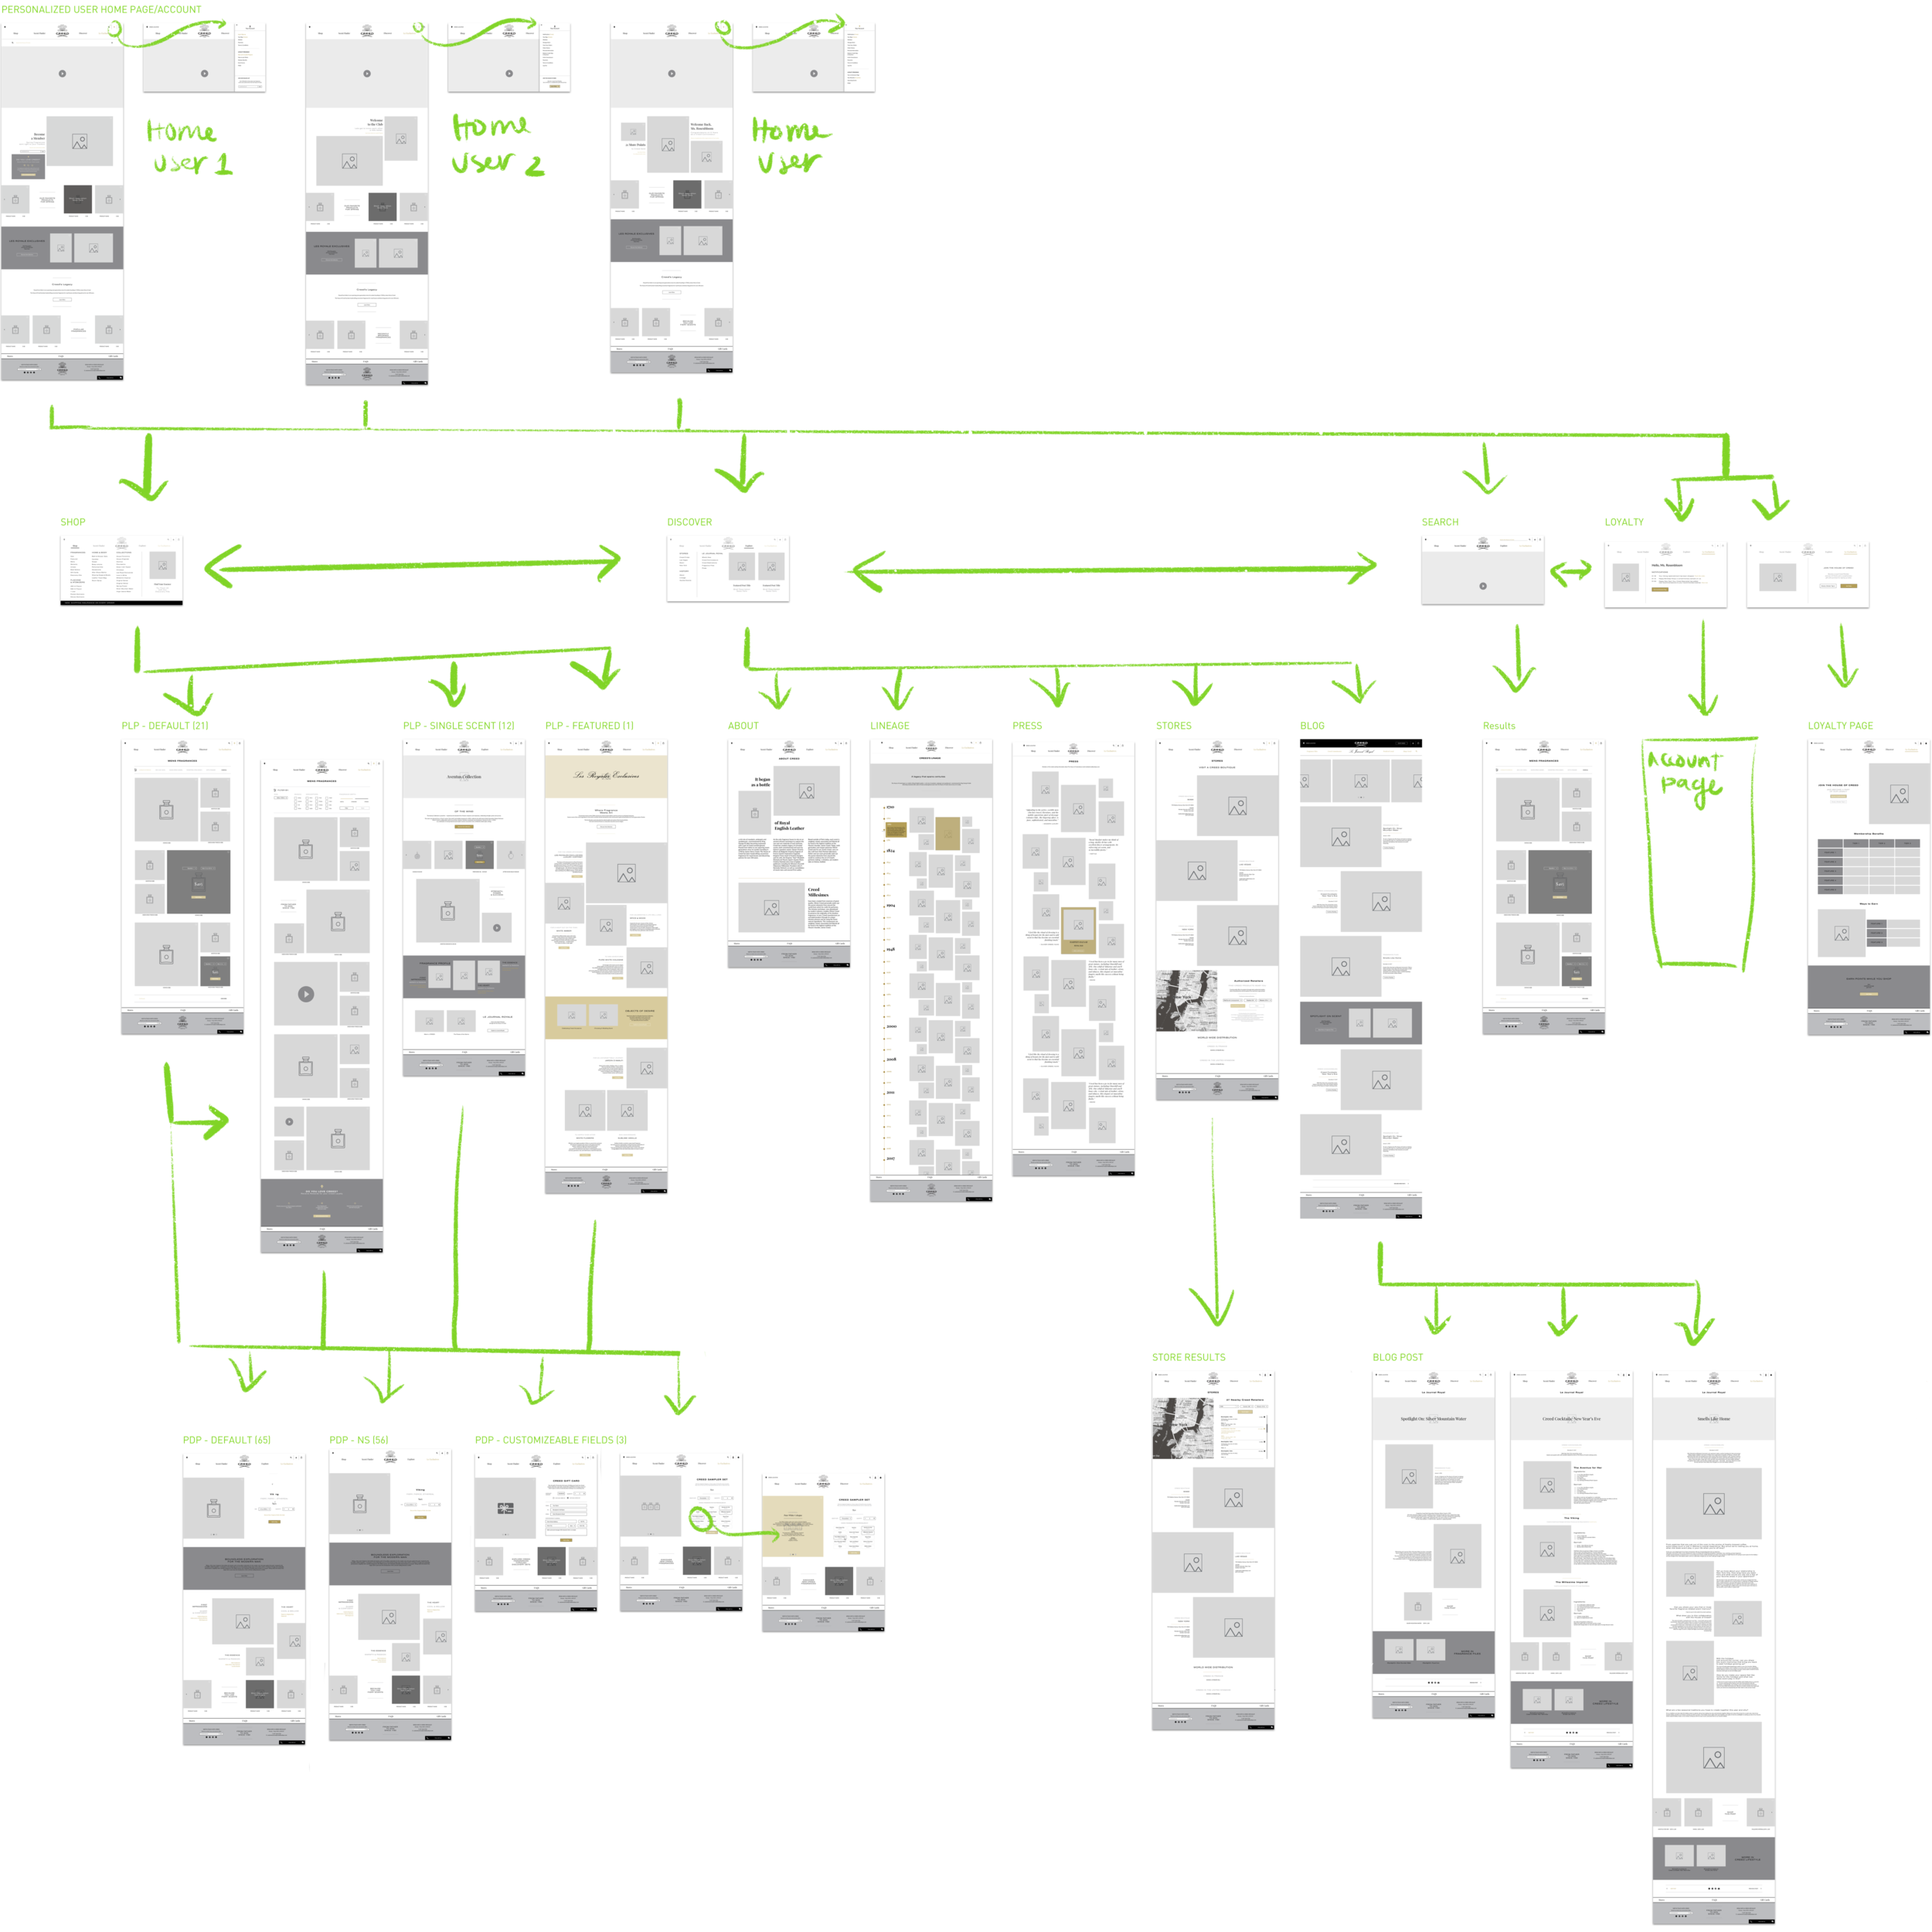 Creed_Wireframes_annotatedish.png